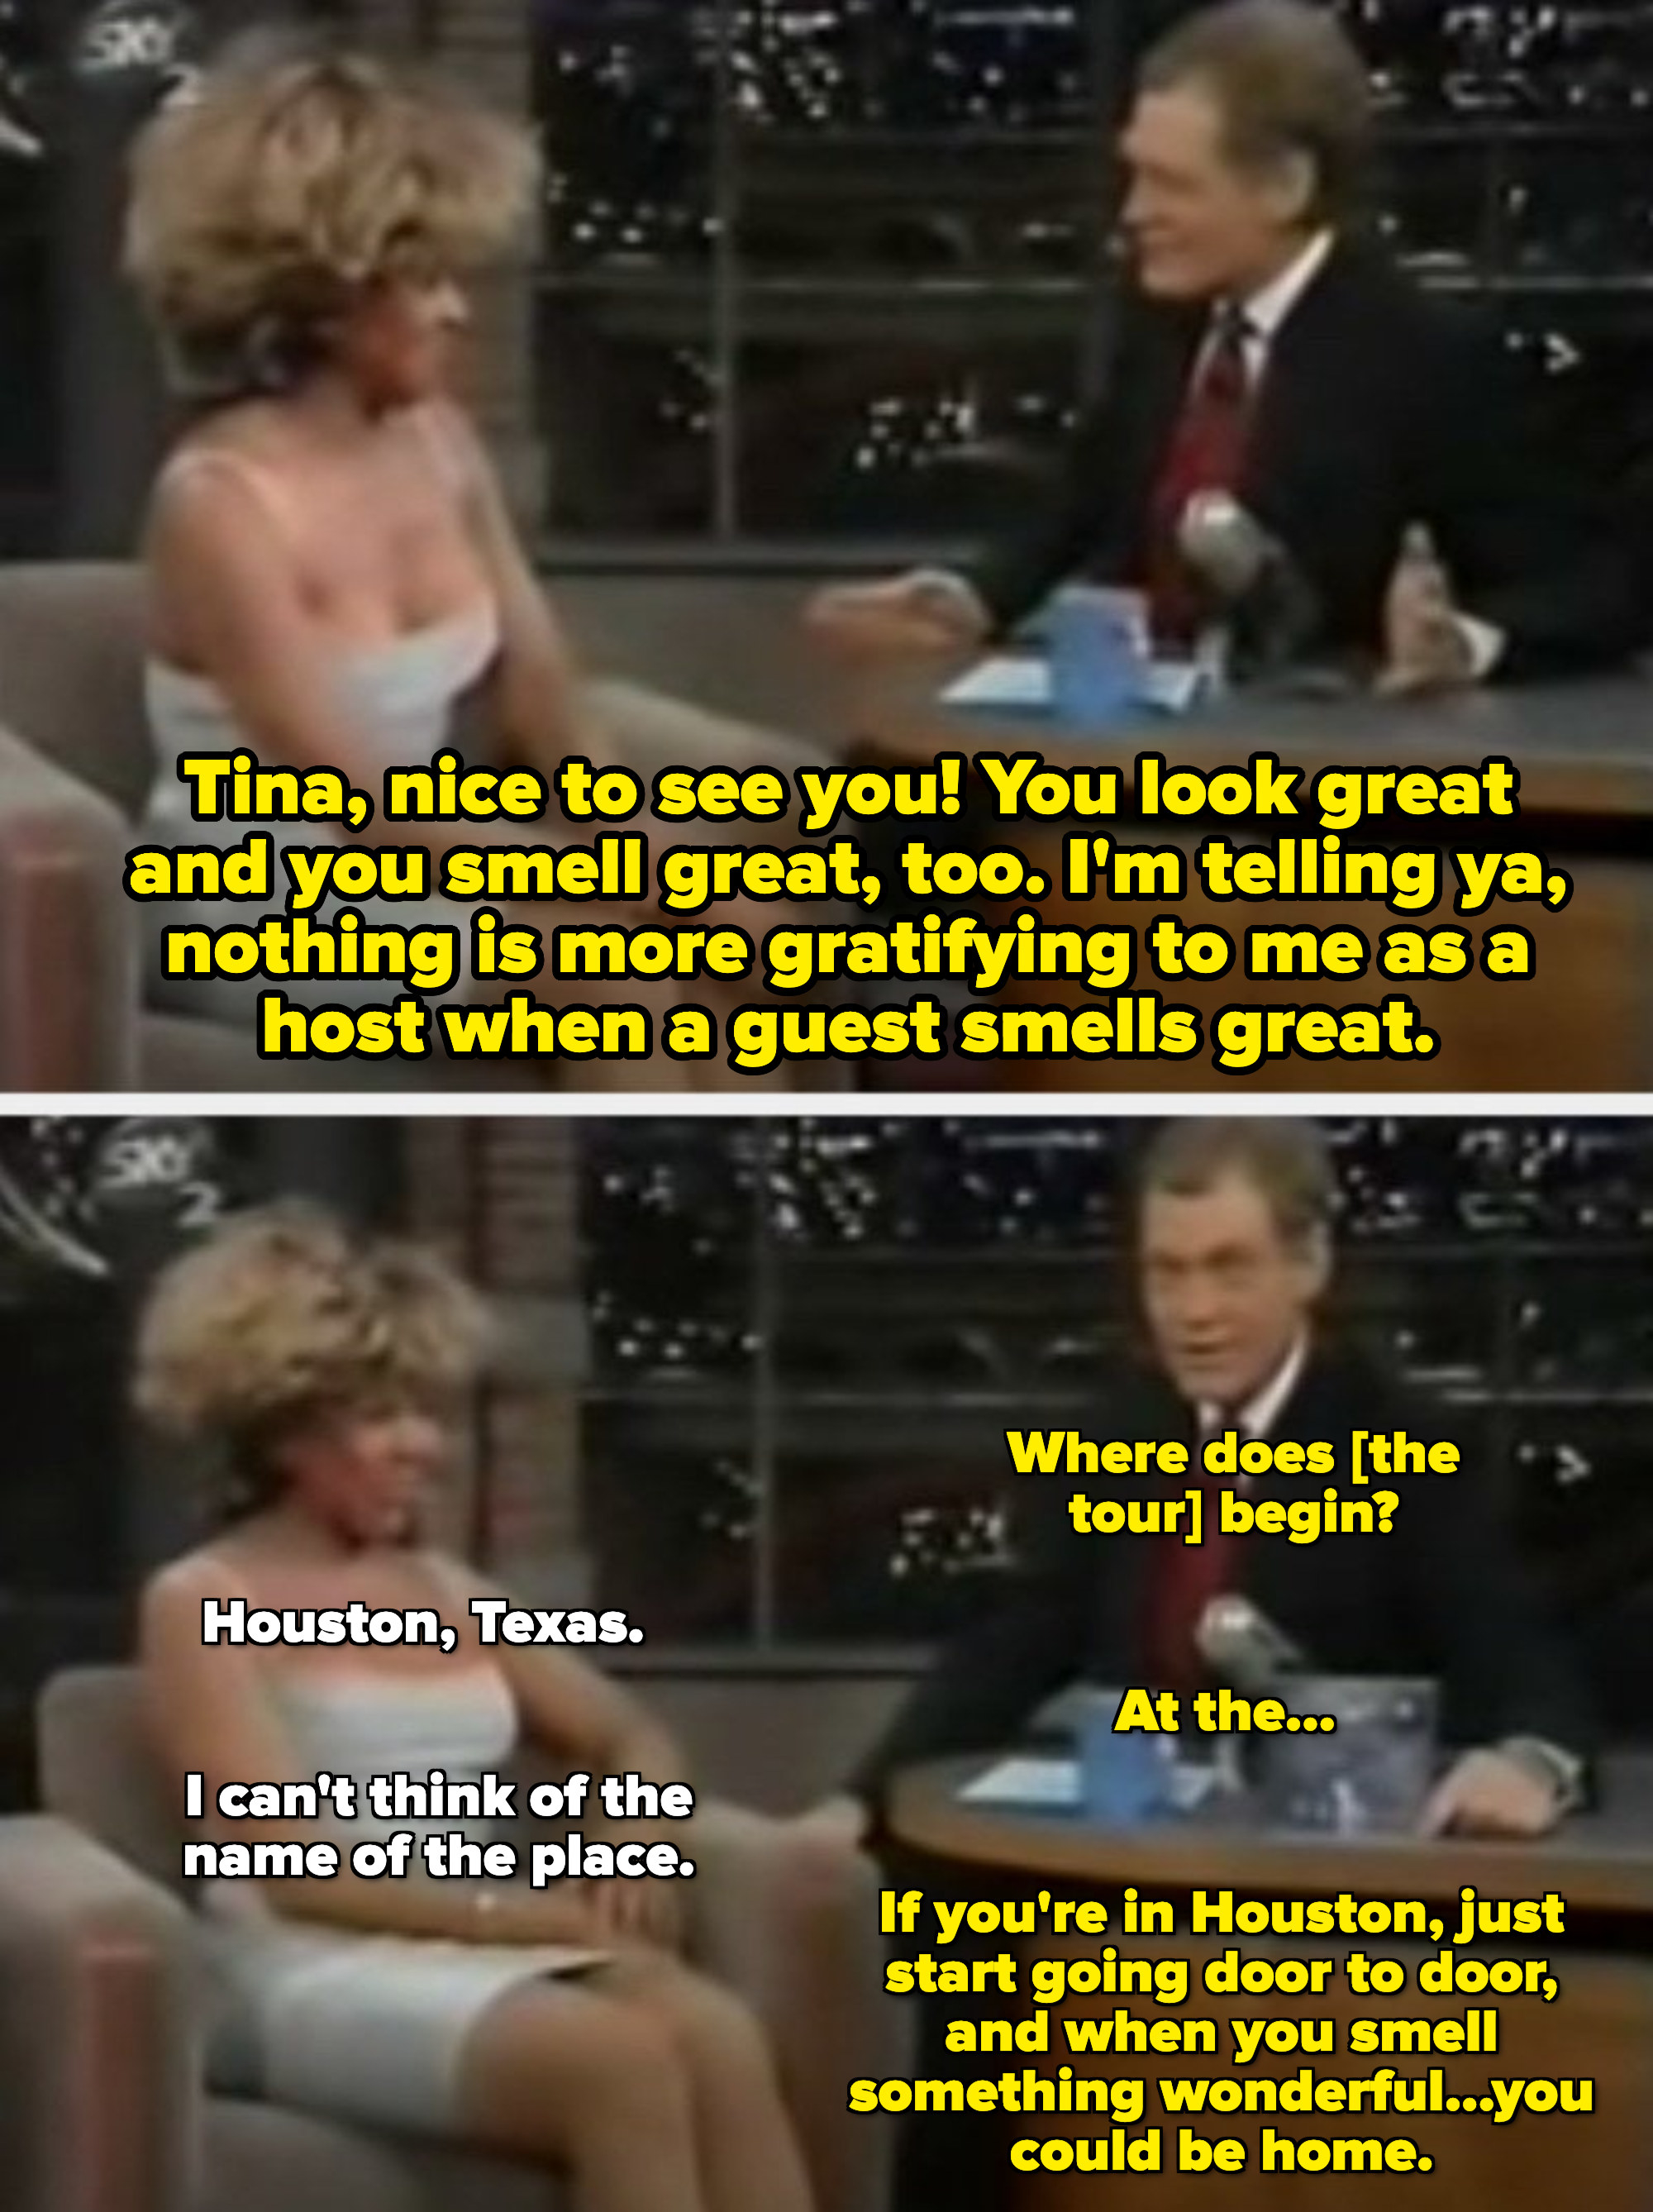 """Letterman telling Tina Turner she smells great and that """"Nothing is more gratifying to me as a host when a guest smells great"""""""